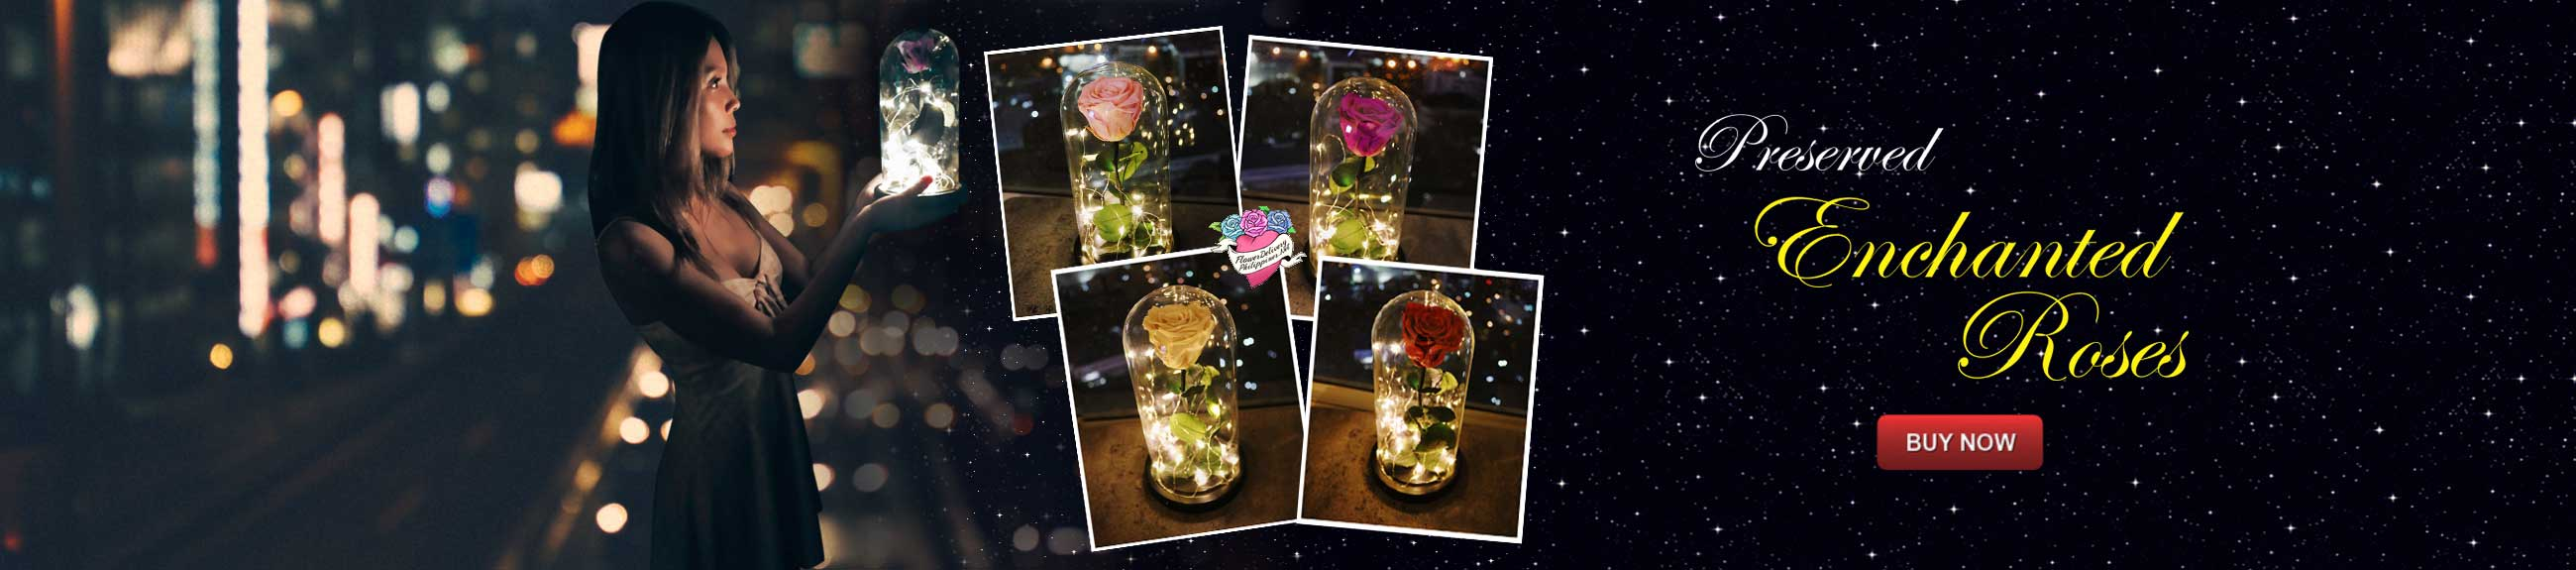 preserved-roses-dome-banner-philippines.jpg